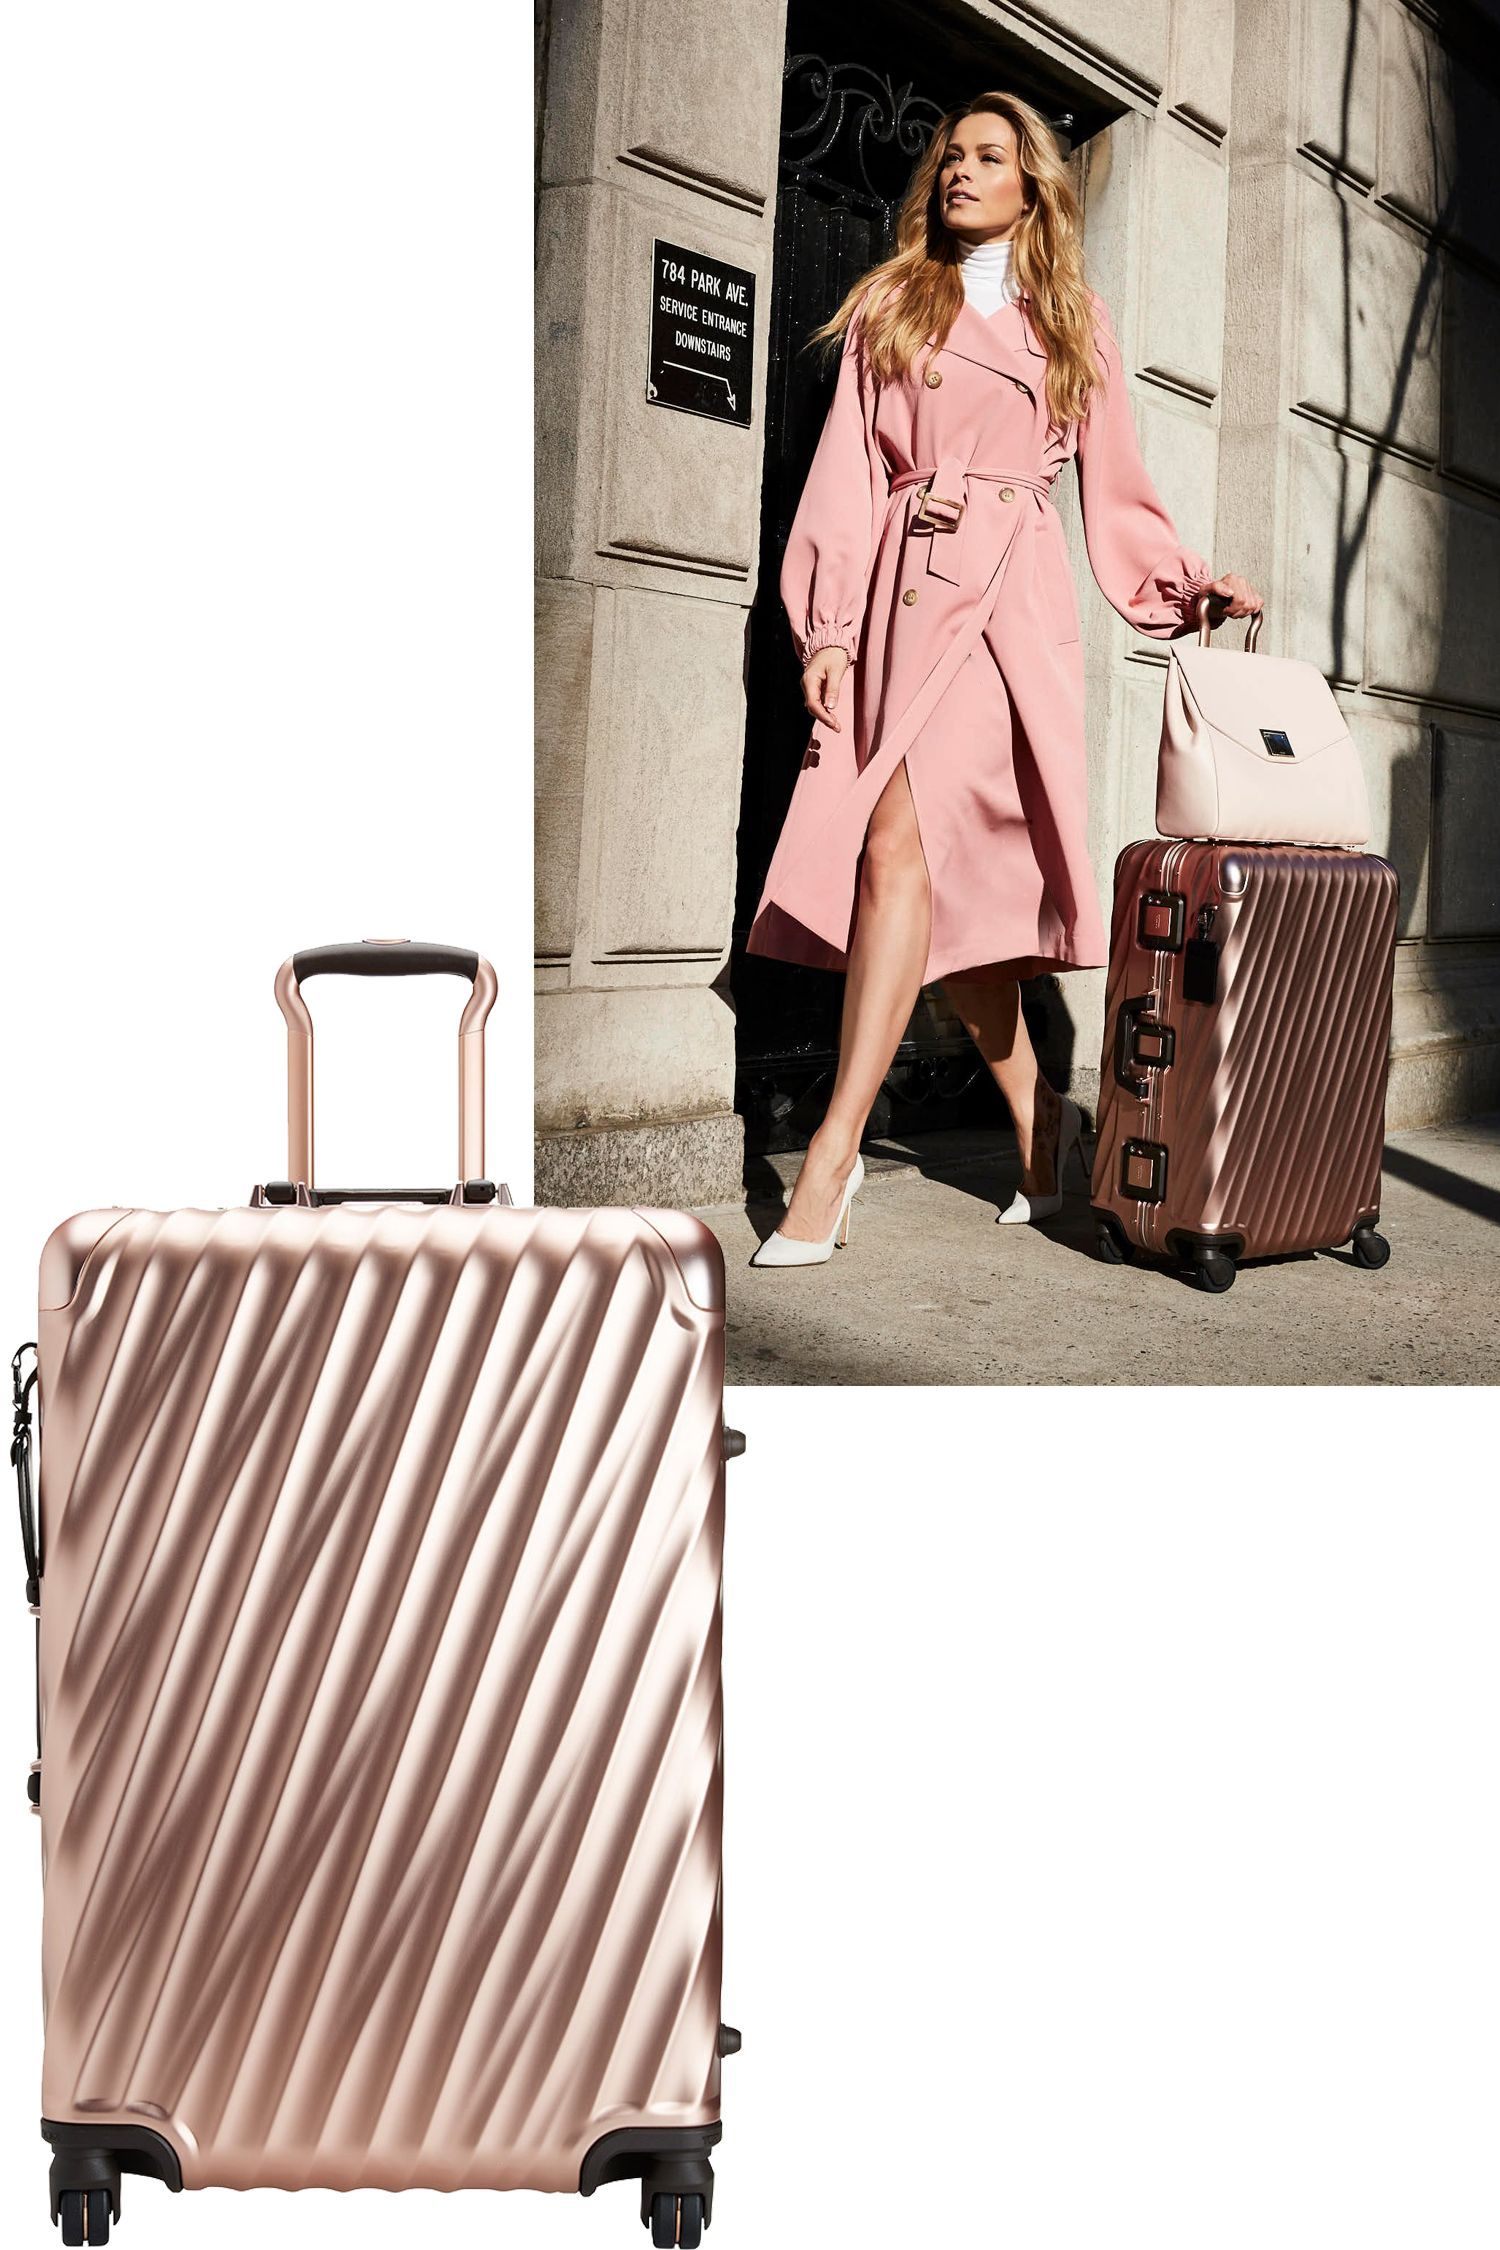 """<p>Whether you're heading to Europe forfashion month or flying to the tropics, a standout(and lightweight!), suitcase is a must.<span class=""""redactor-invisible-space"""" data-verified=""""redactor"""" data-redactor-tag=""""span"""" data-redactor-class=""""redactor-invisible-space""""></span></p><p><span class=""""redactor-invisible-space"""" data-verified=""""redactor"""" data-redactor-tag=""""span"""" data-redactor-class=""""redactor-invisible-space""""><em data-verified=""""redactor"""" data-redactor-tag=""""em"""">Tumi suitcase, $1,195, <a href=""""https://shop.harpersbazaar.com/designers/tumi/tumi-19-degree-aluminum-short-trip-packing-case-12079.html"""" data-tracking-id=""""recirc-text-link"""">ShopBAZAAR.com</a>.</em><br></span></p>"""